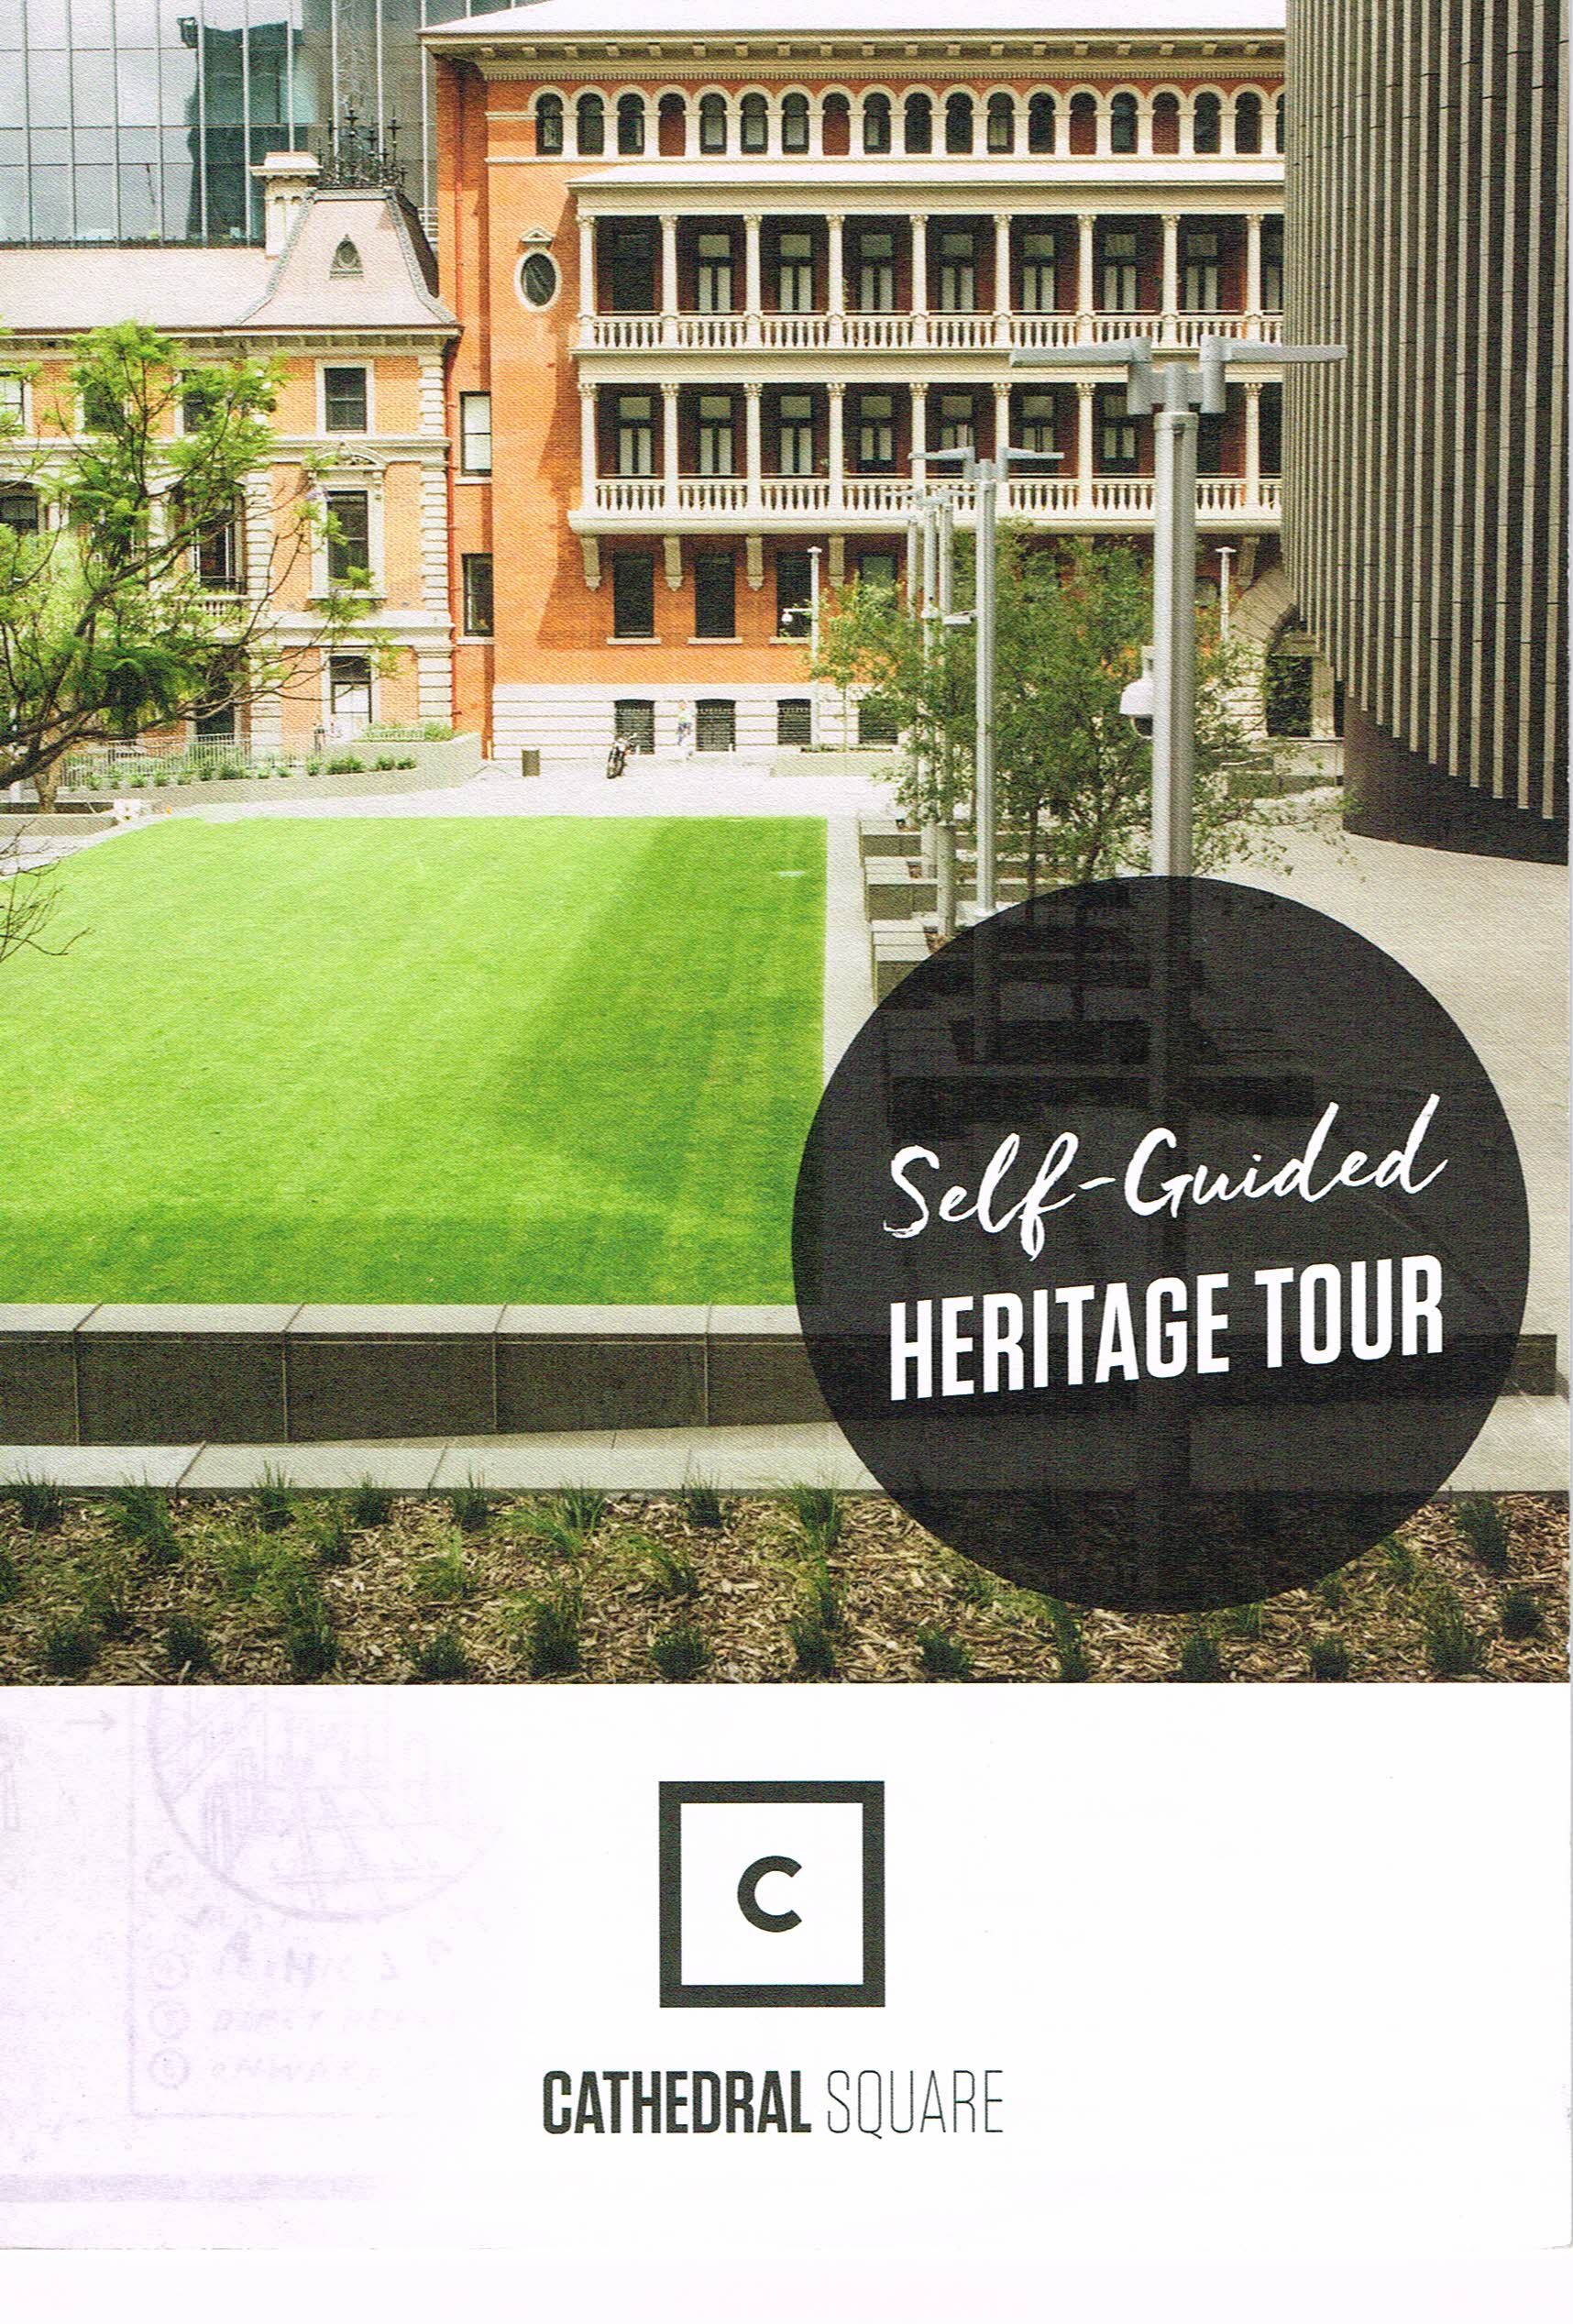 Self-Guided Heritage Tour : Cathedral Square  City of Perth